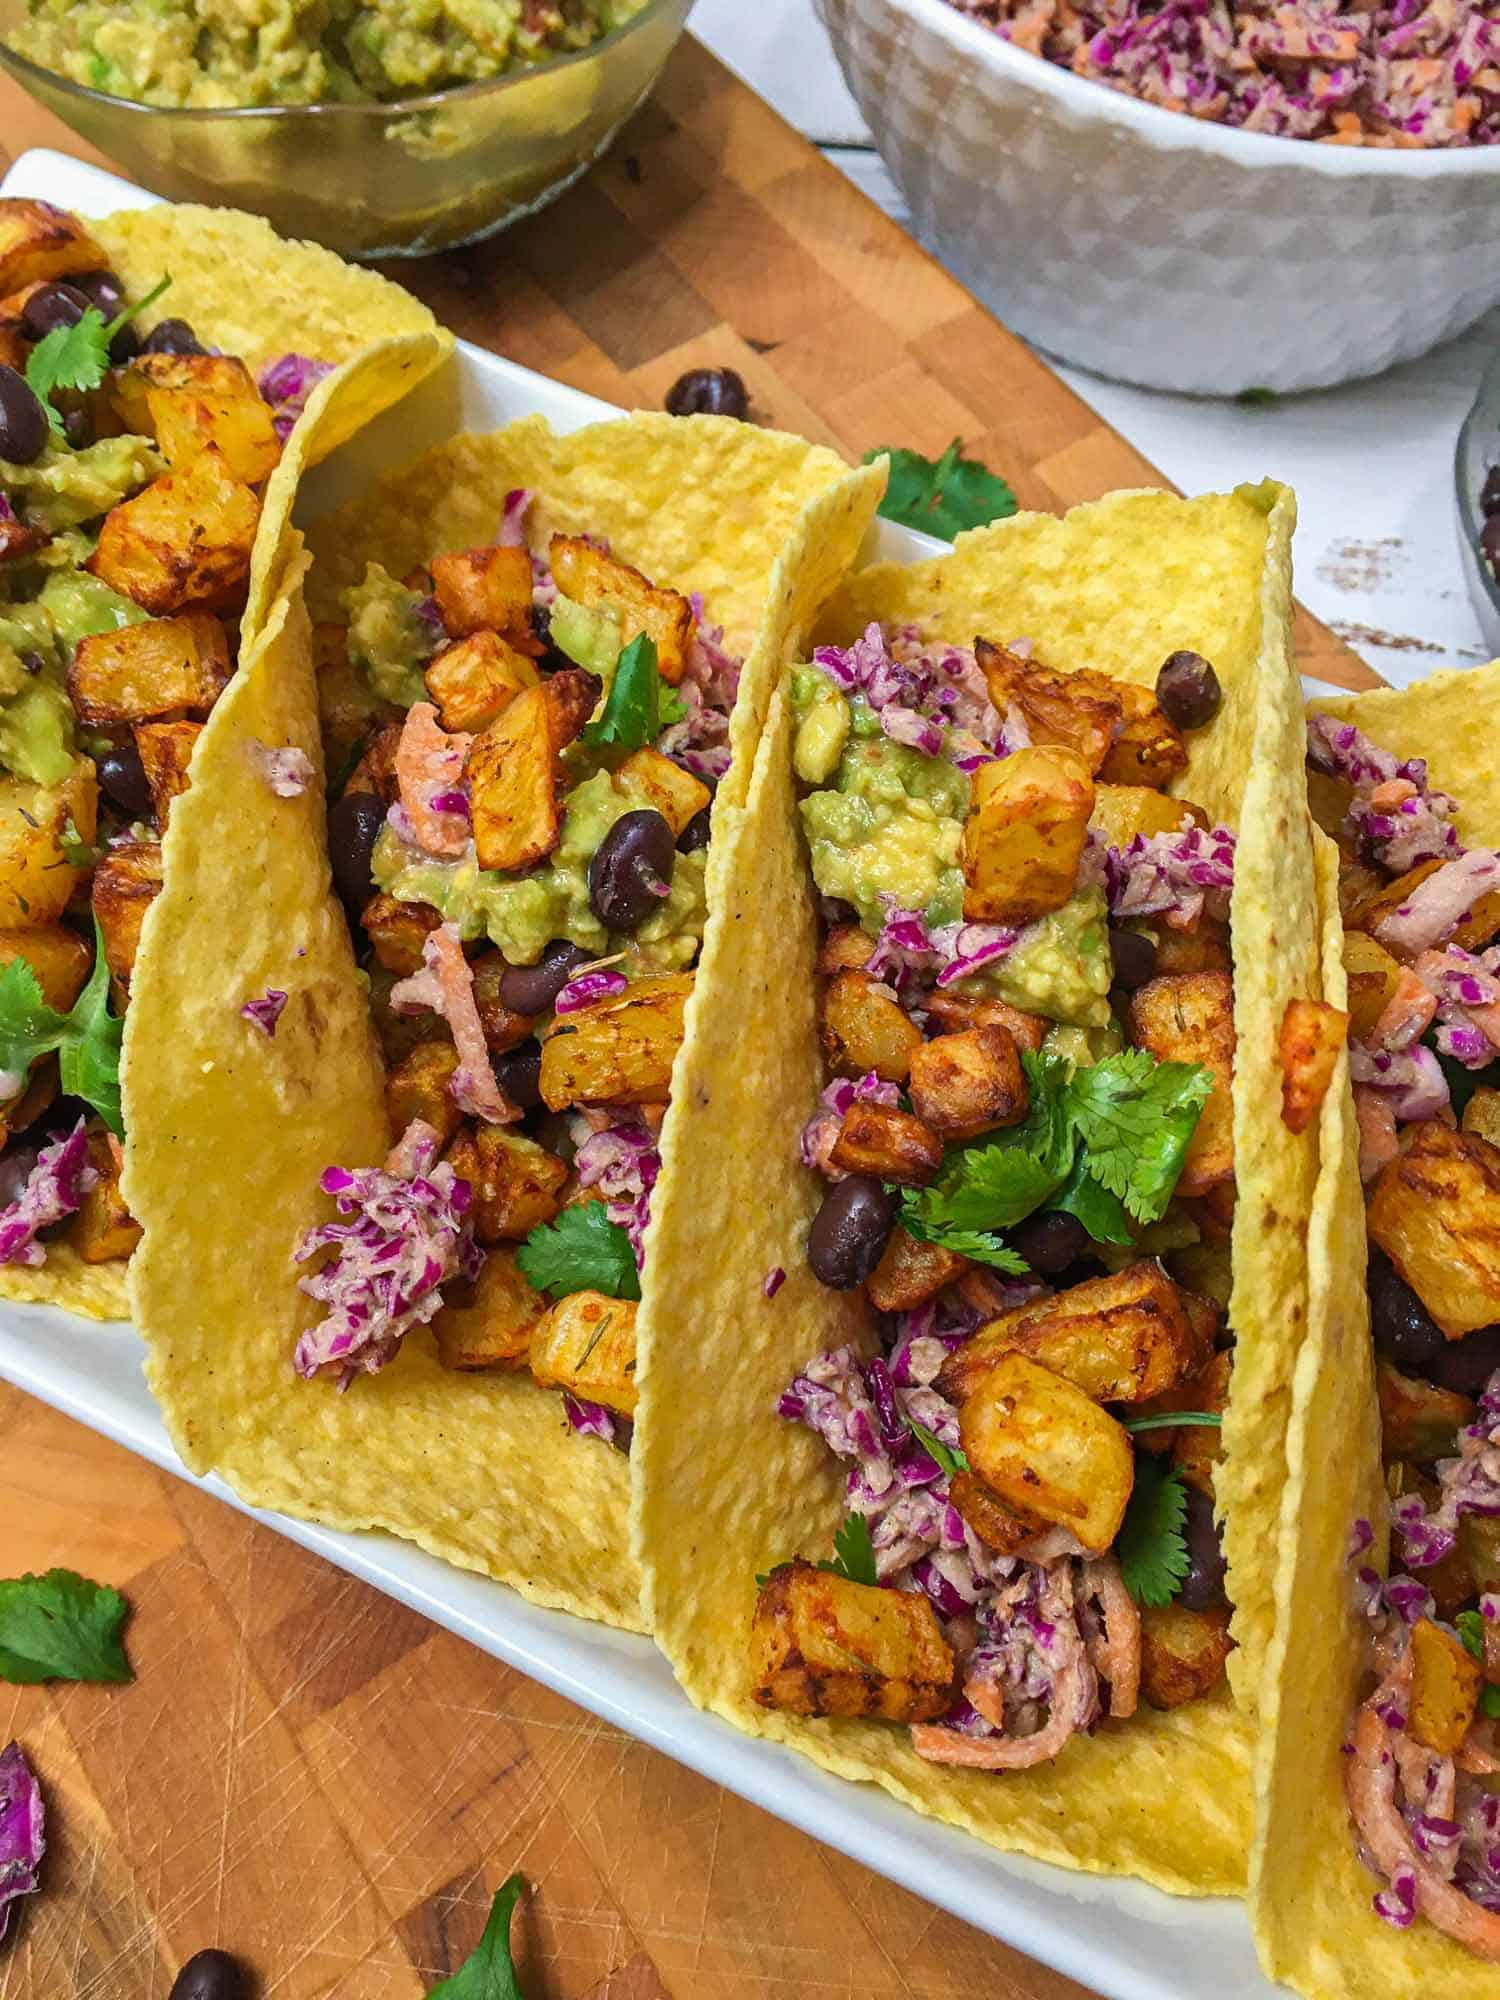 Close up of tacos filled with potato, guacamole, black beans, cilantro and slaw.